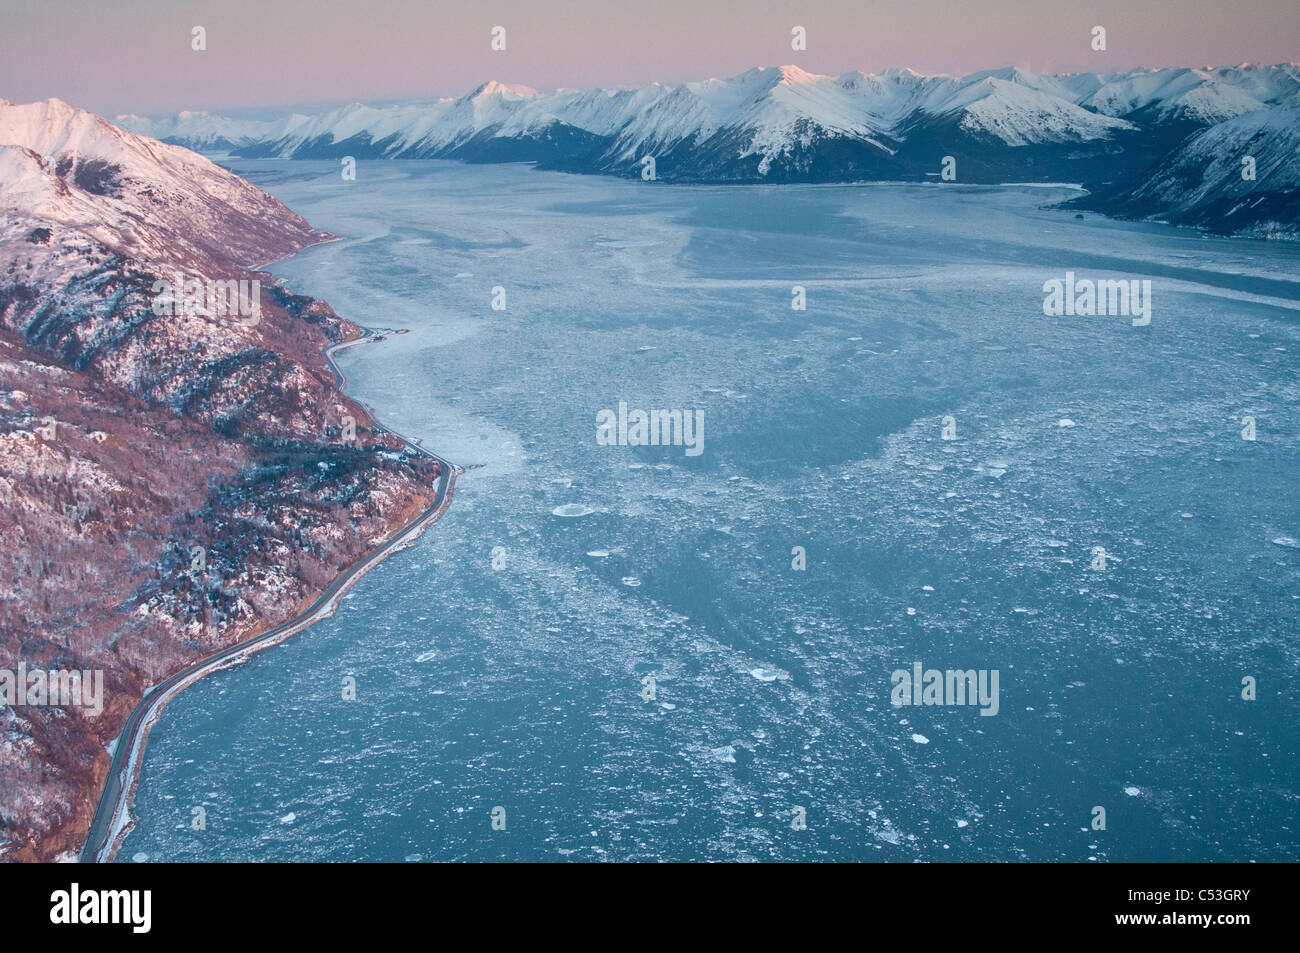 Aerial view of the Turnagain Arm and Seward Highway south of Anchorage, Southcentral Alaska, Winter - Stock Image